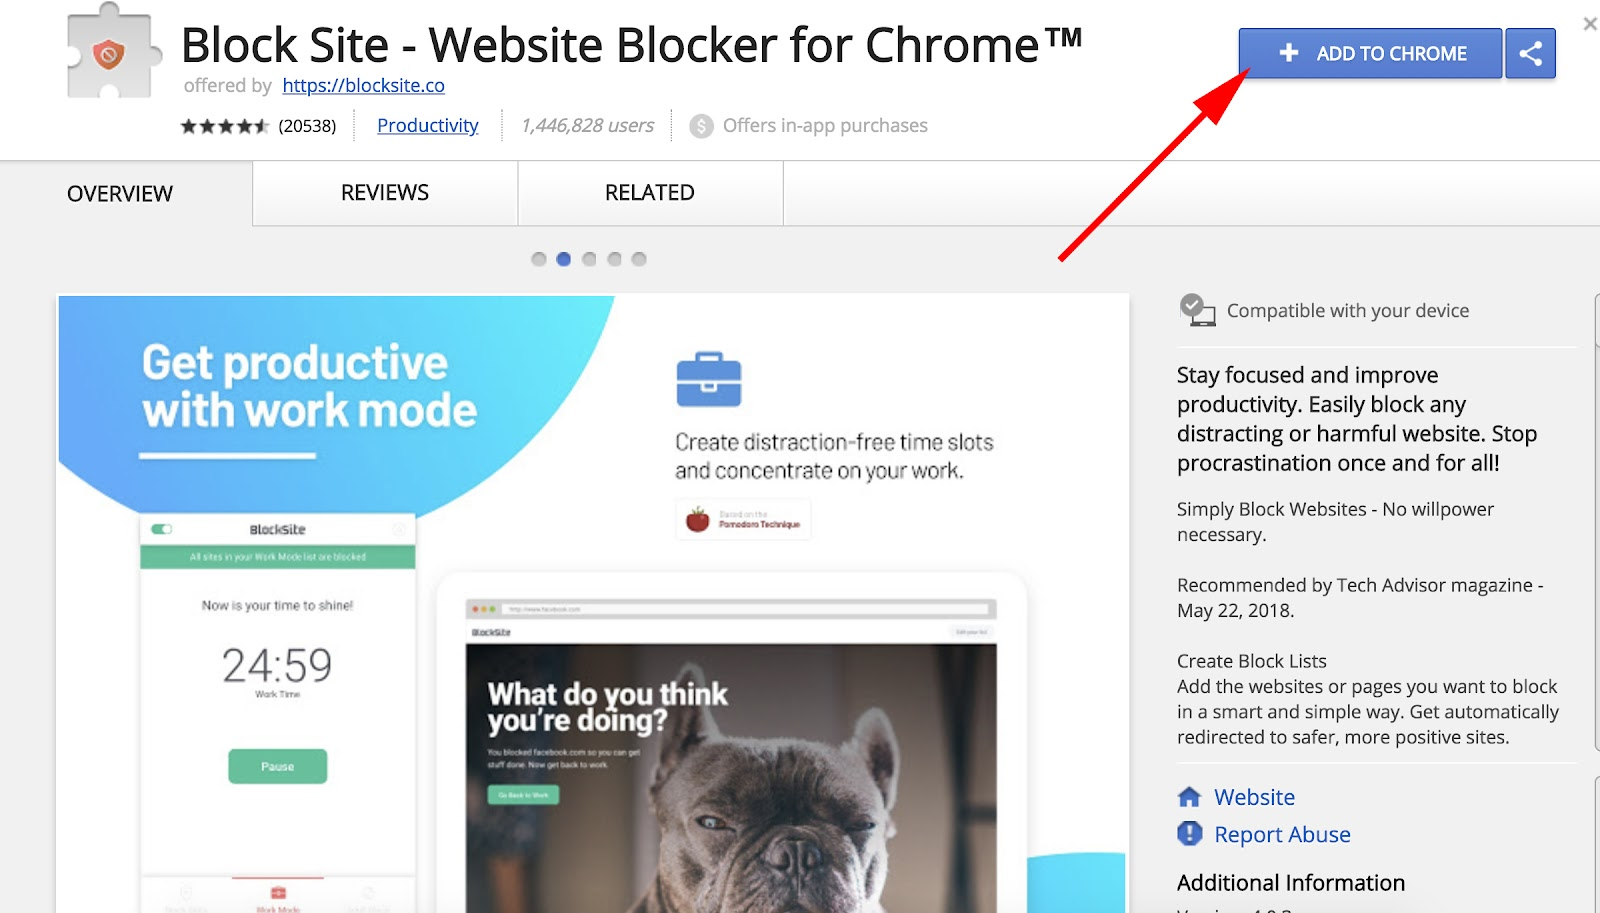 How to Block Websites on Chrome Desktop and Mobile